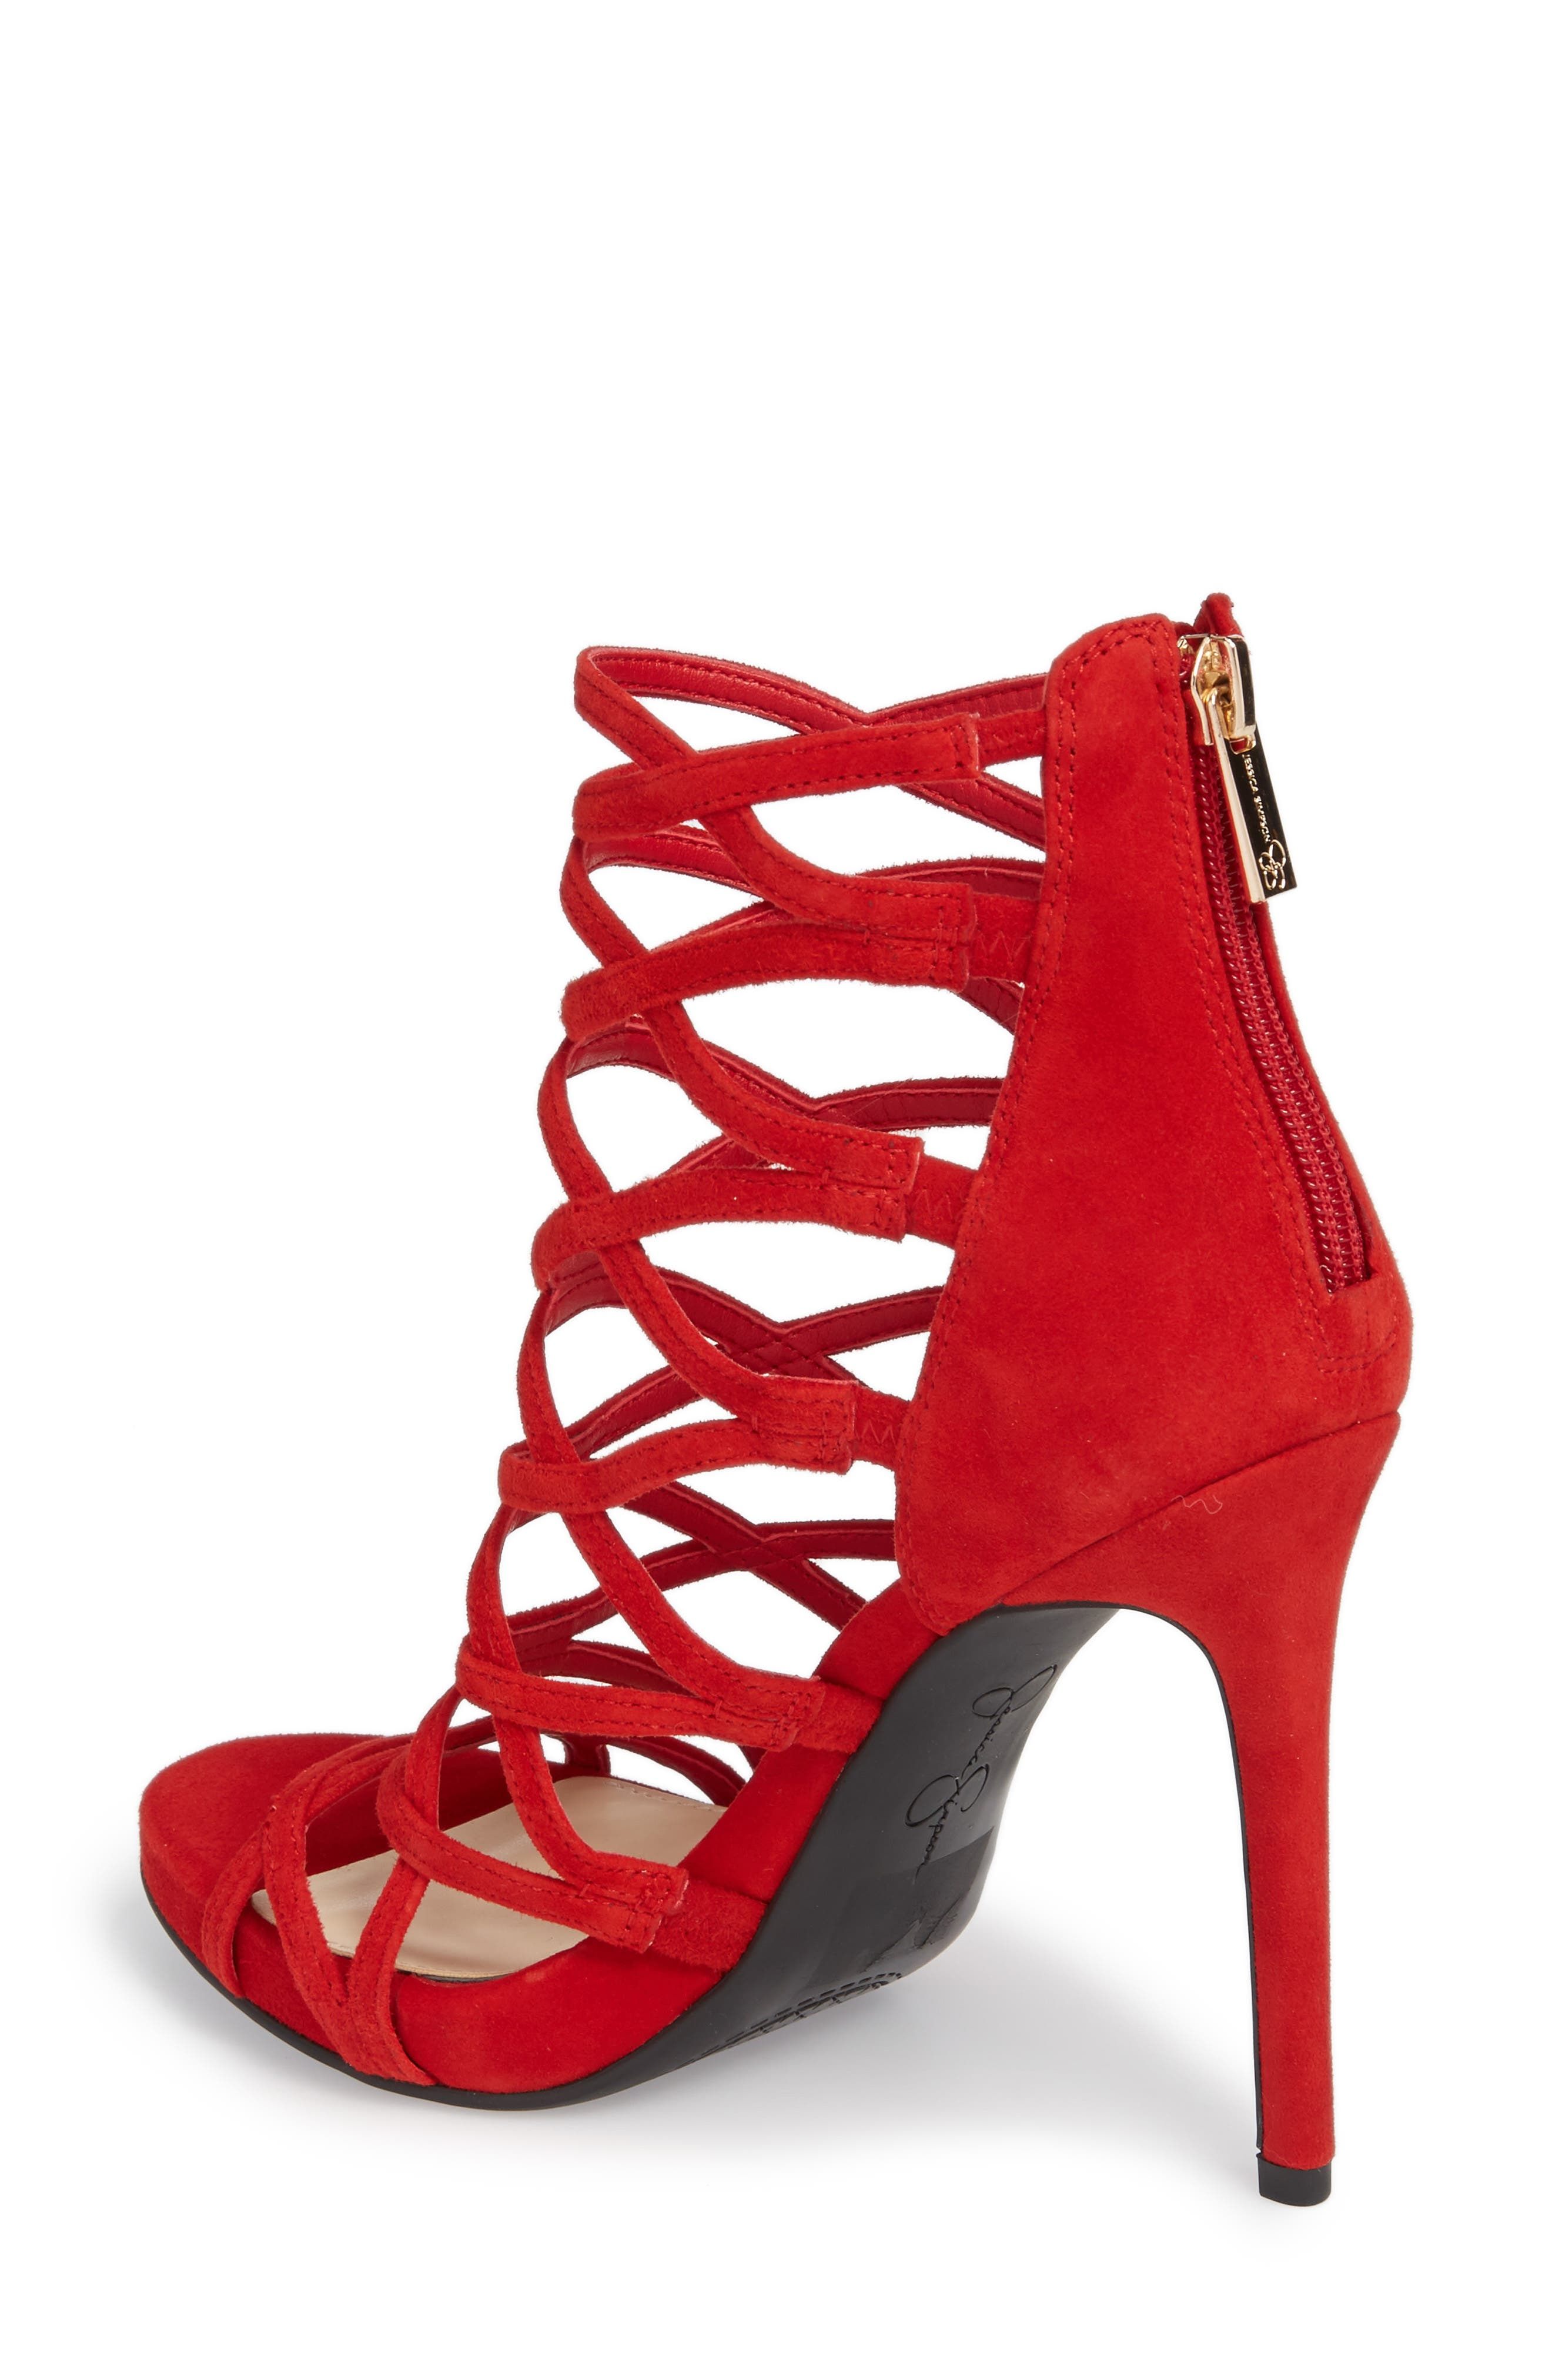 Razella Cage Sandal,                             Alternate thumbnail 2, color,                             Red Muse Suede